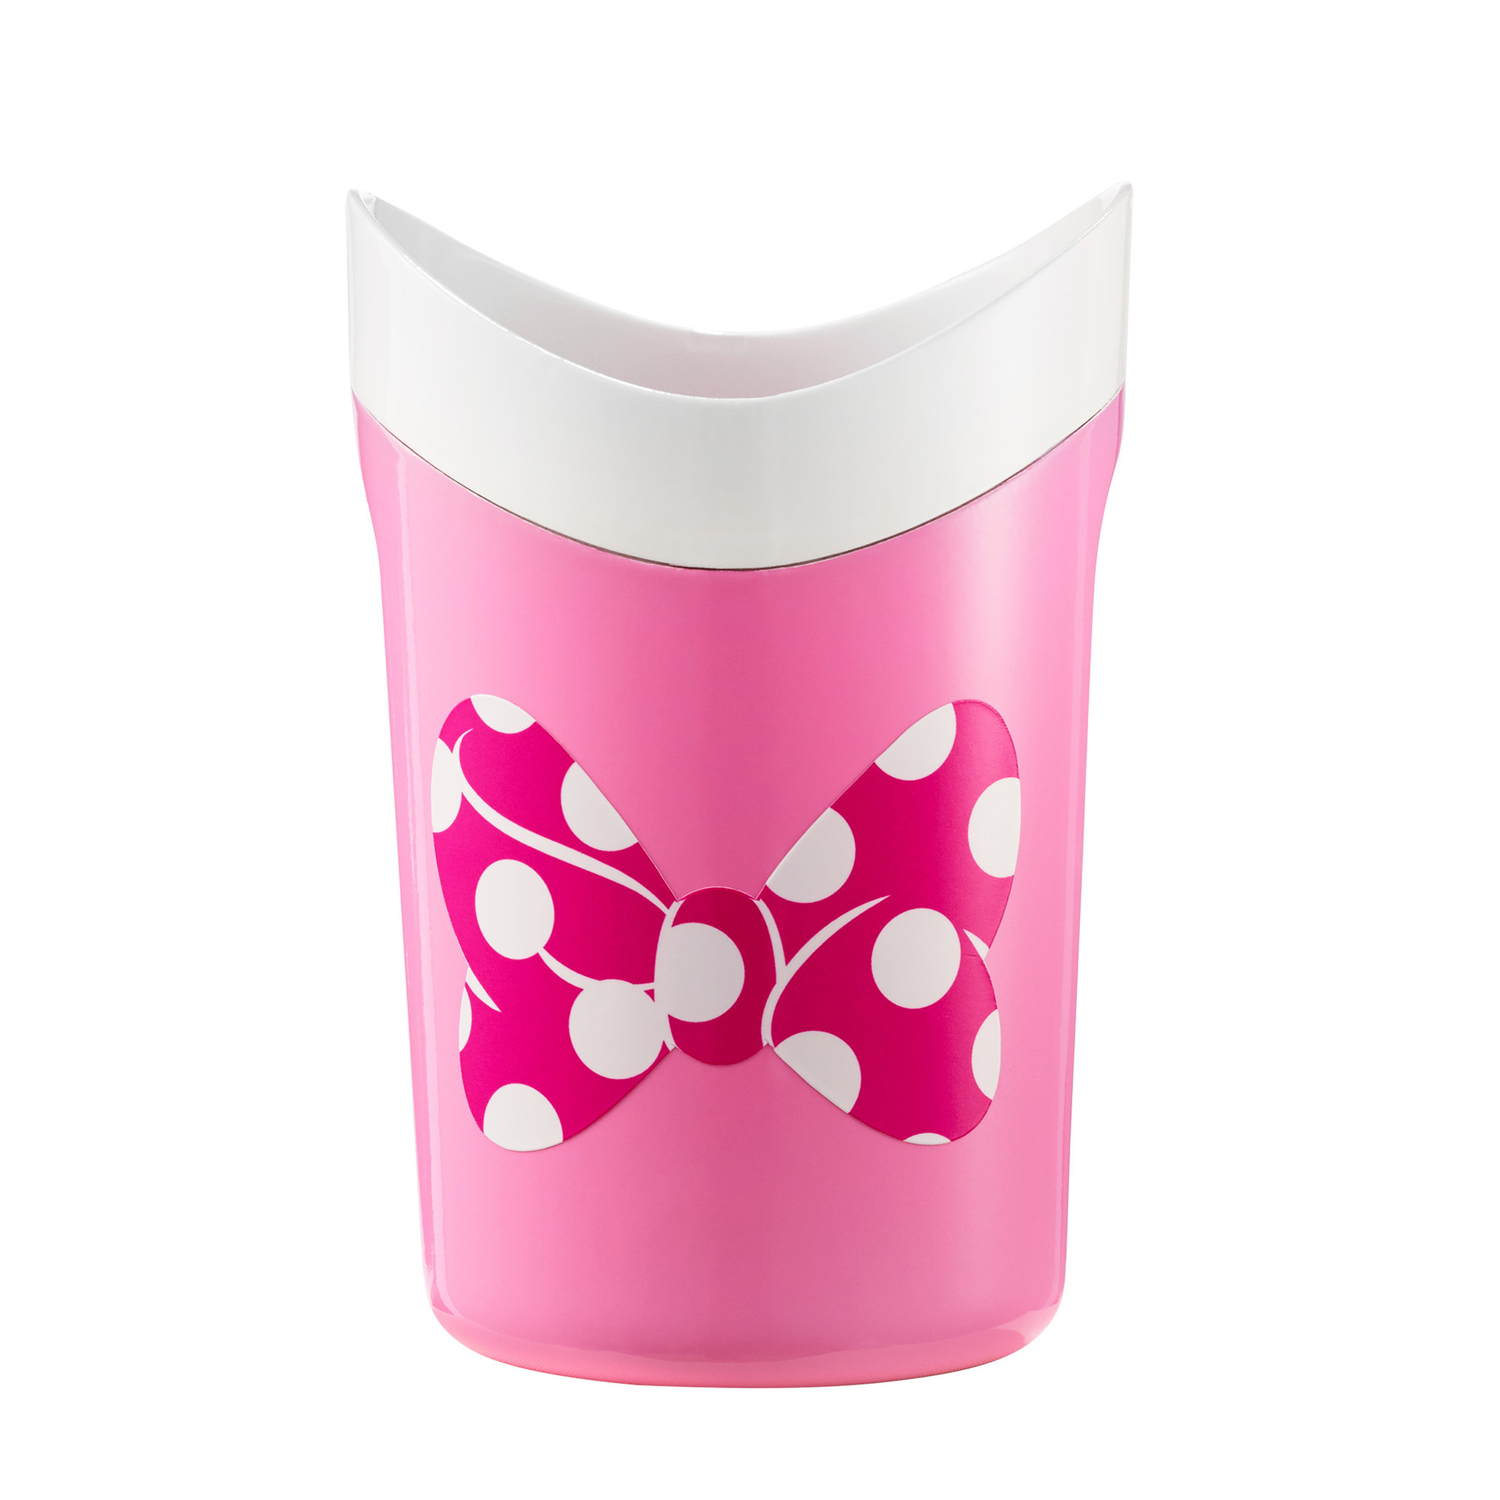 Disney Minnie Mouse Bath Rinse Cup by The First Years